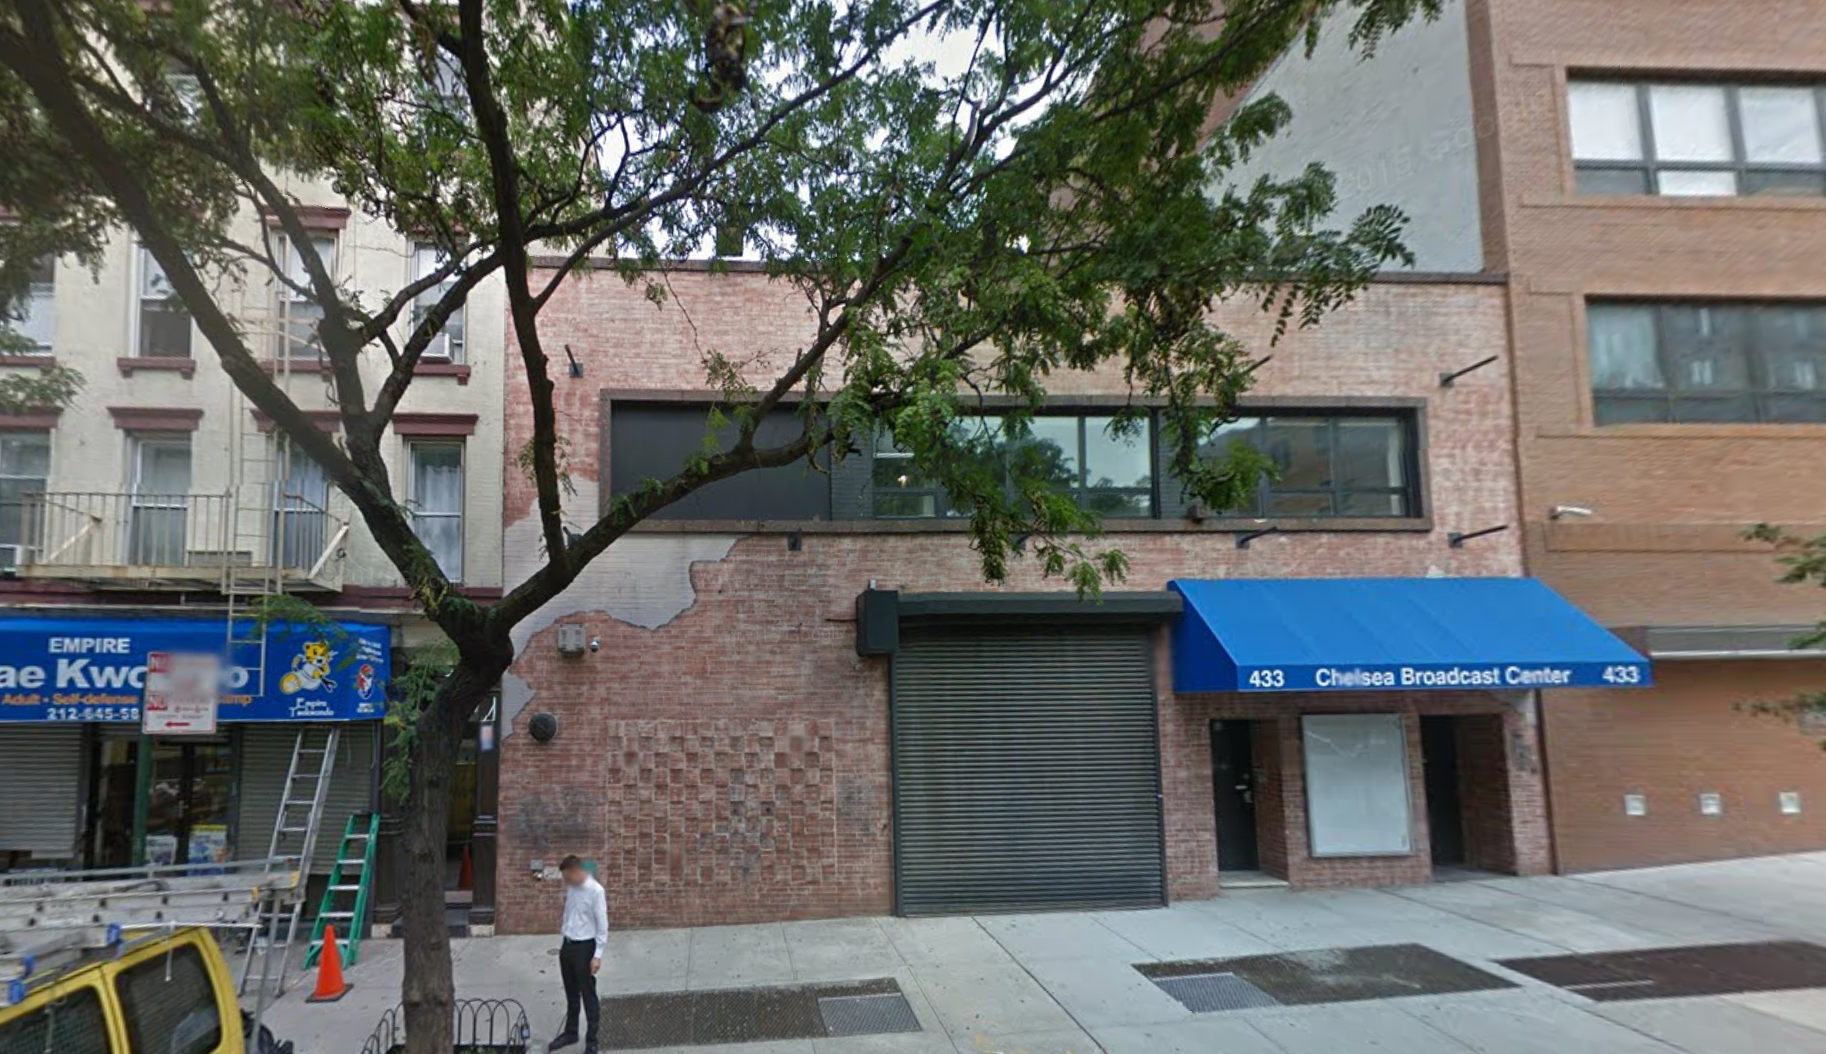 433 West 53rd Street, image via Google Maps